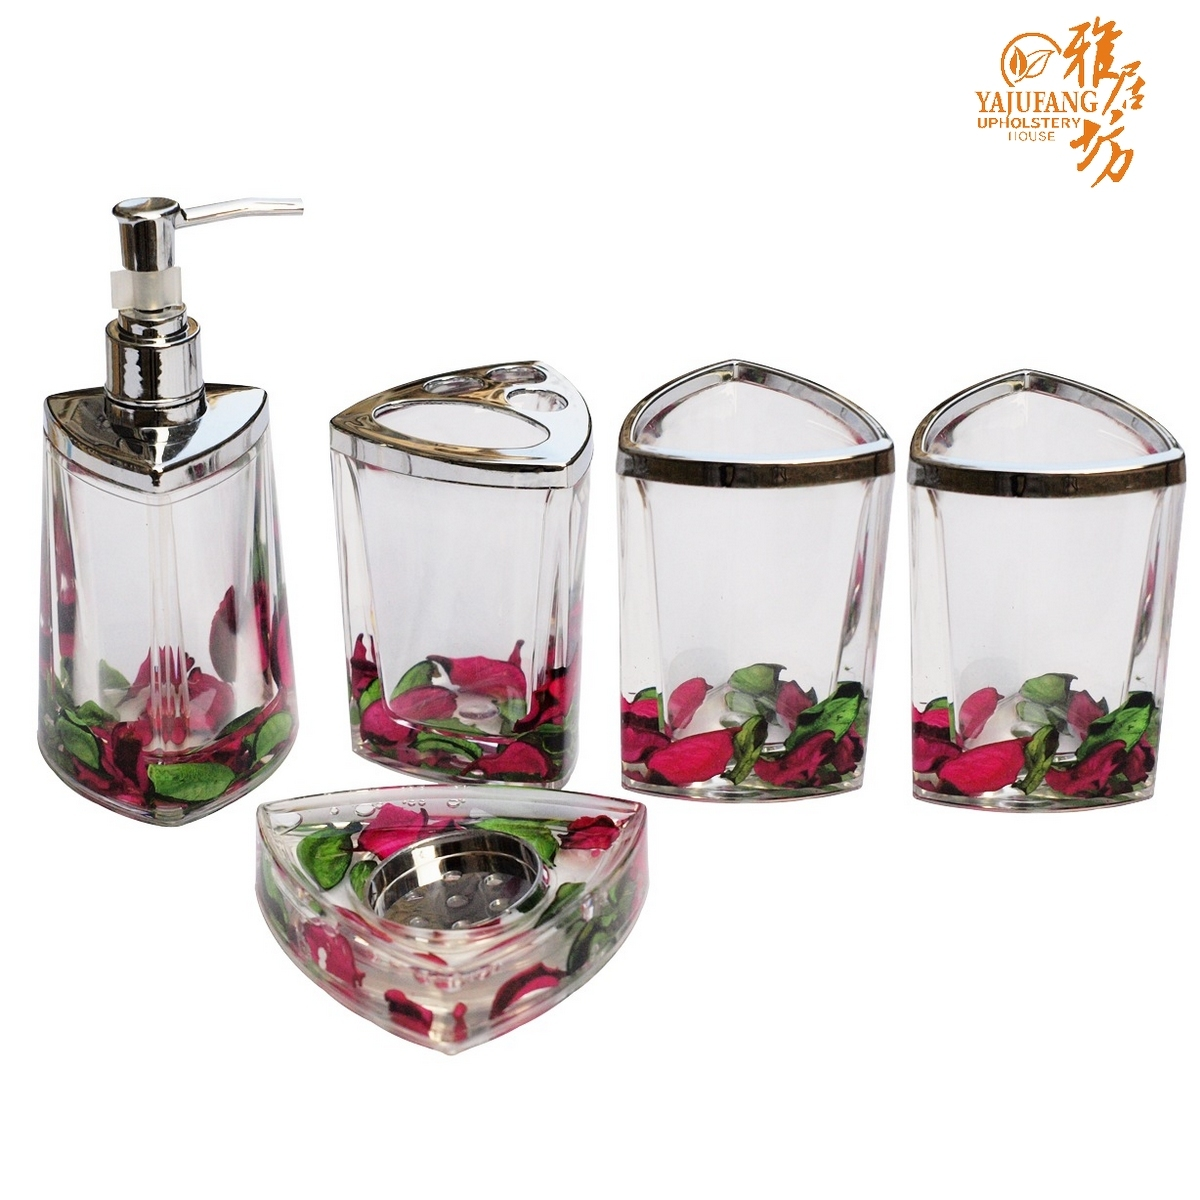 Acrylic bathroom set shukoubei supplies bathroom set for Bathroom accessories set